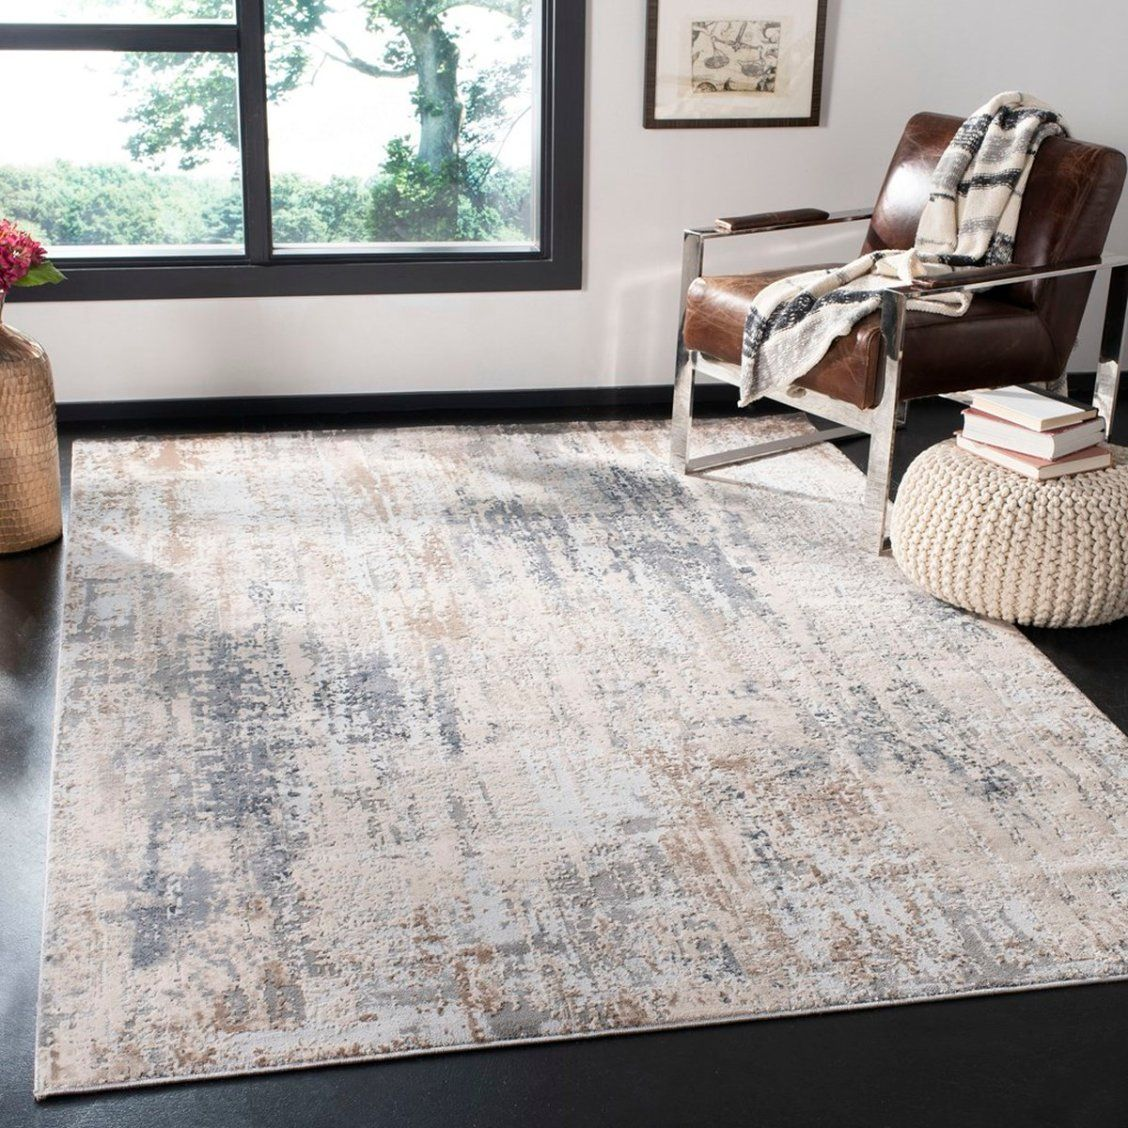 The Invista Rug Collection Adds High Touch Textures To Fascinating Abstract Imagery In Creating These Dazzling Floor Cove Contemporary Rug Rugs Classic Carpets